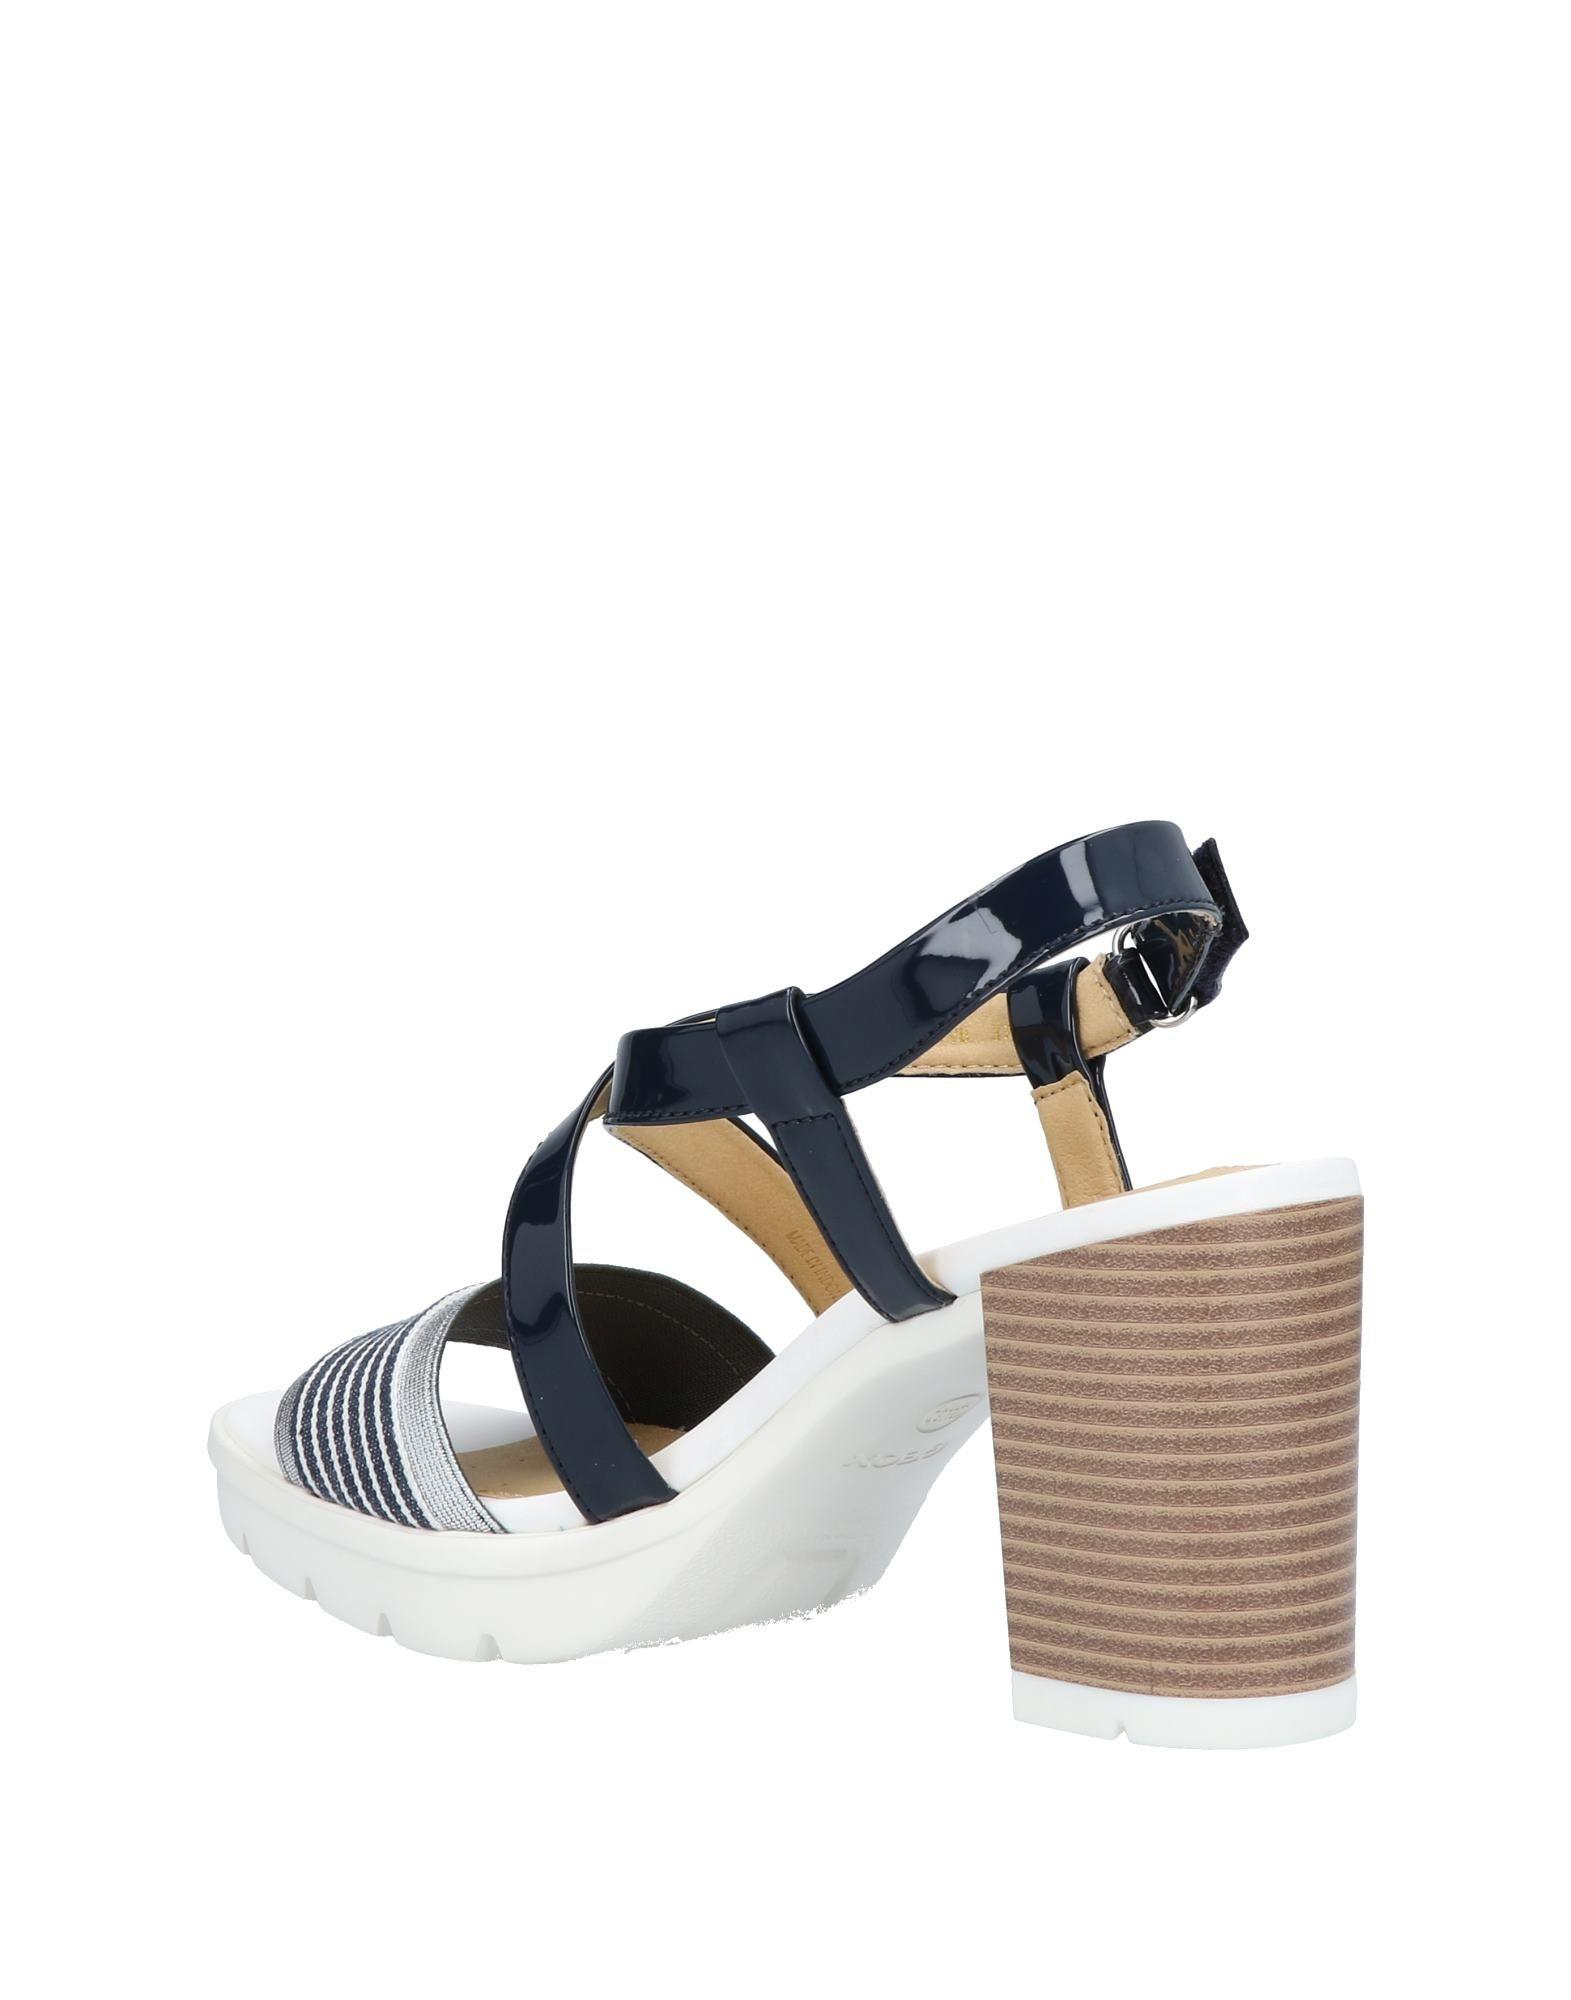 8e54dc41be8 Geox 's D Gintare B Open Toe Sandals in Blue - Save 52% - Lyst